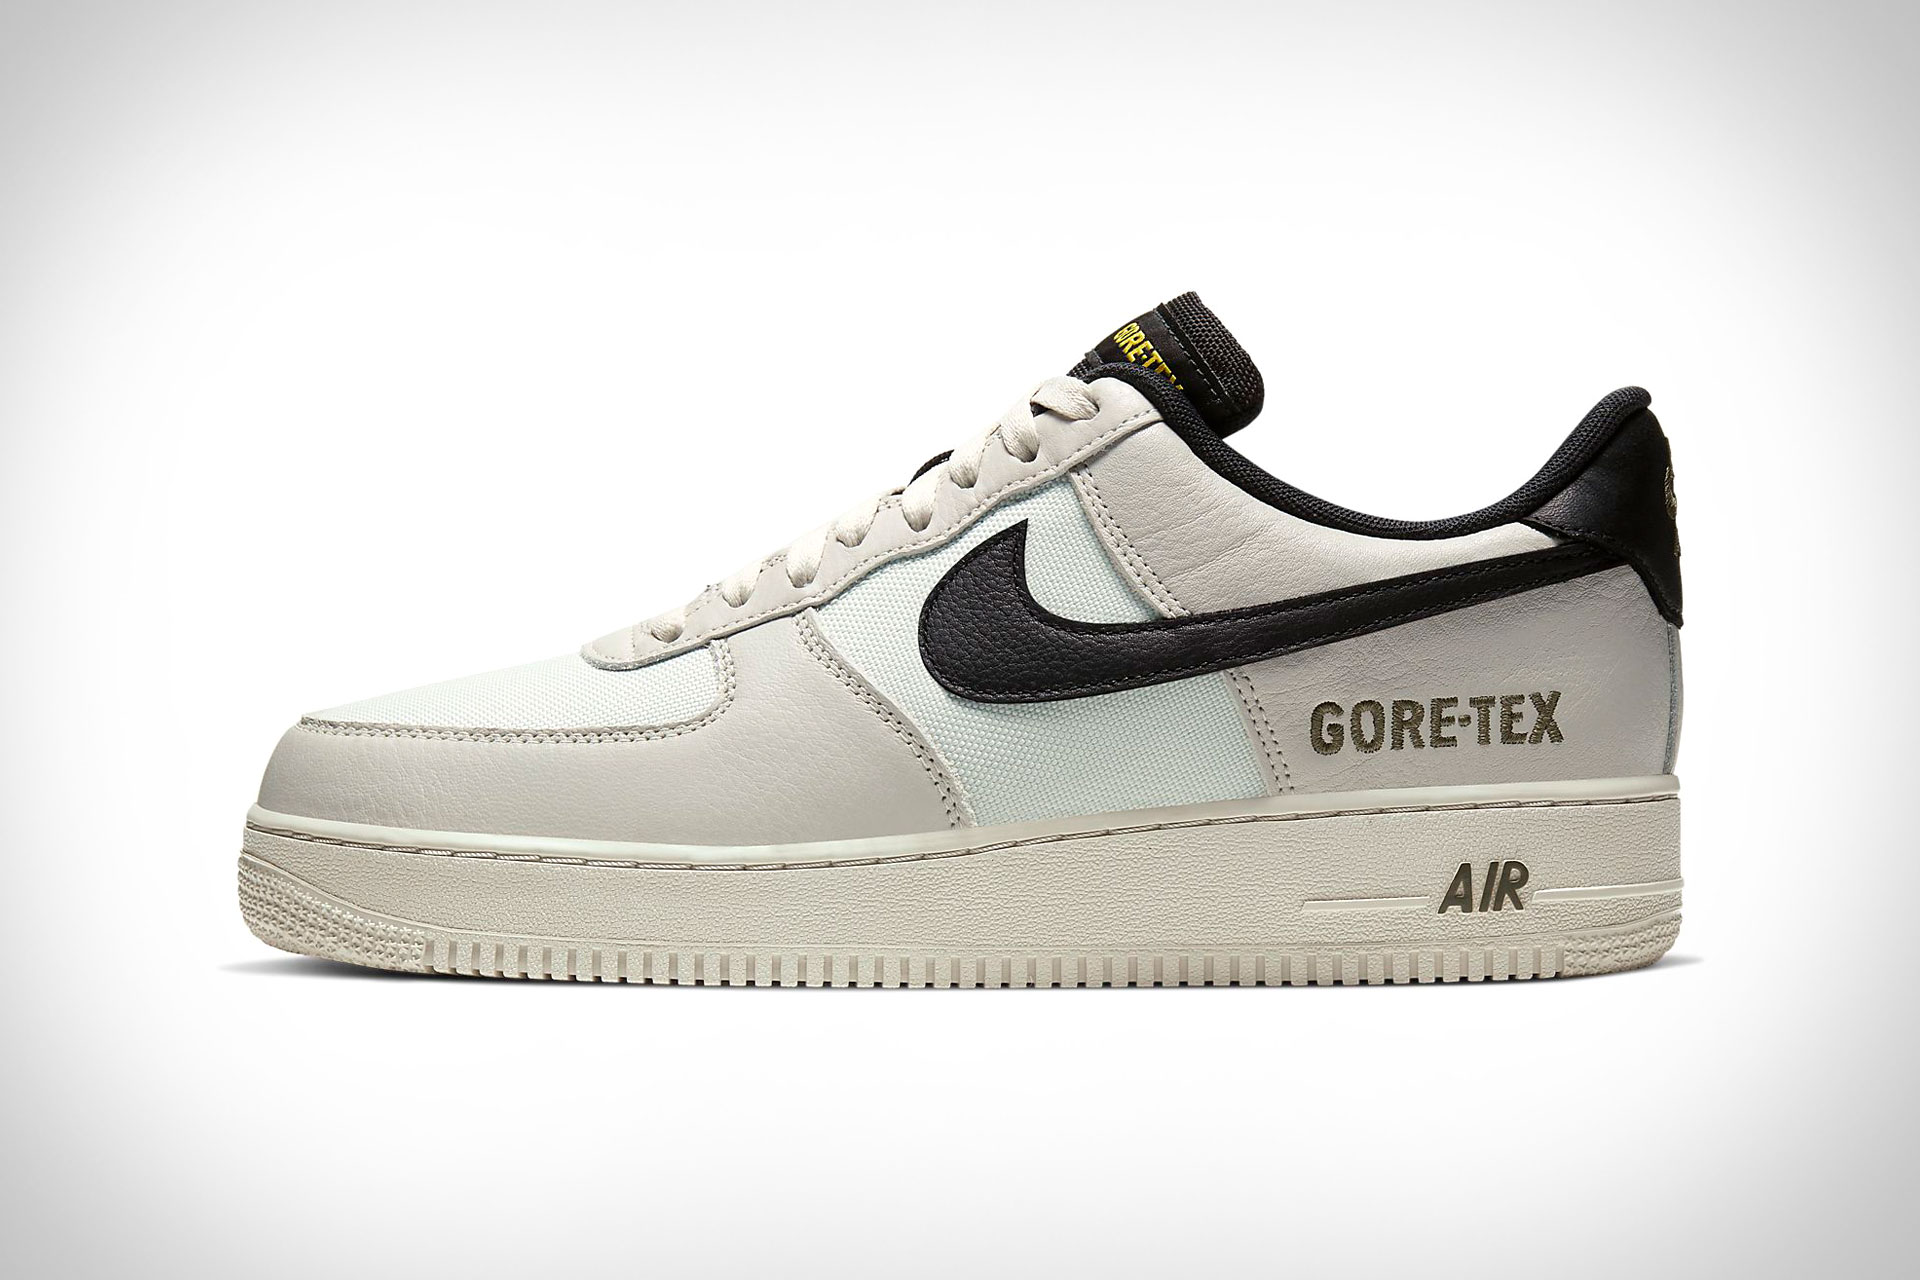 nike gore tex homme chaussure